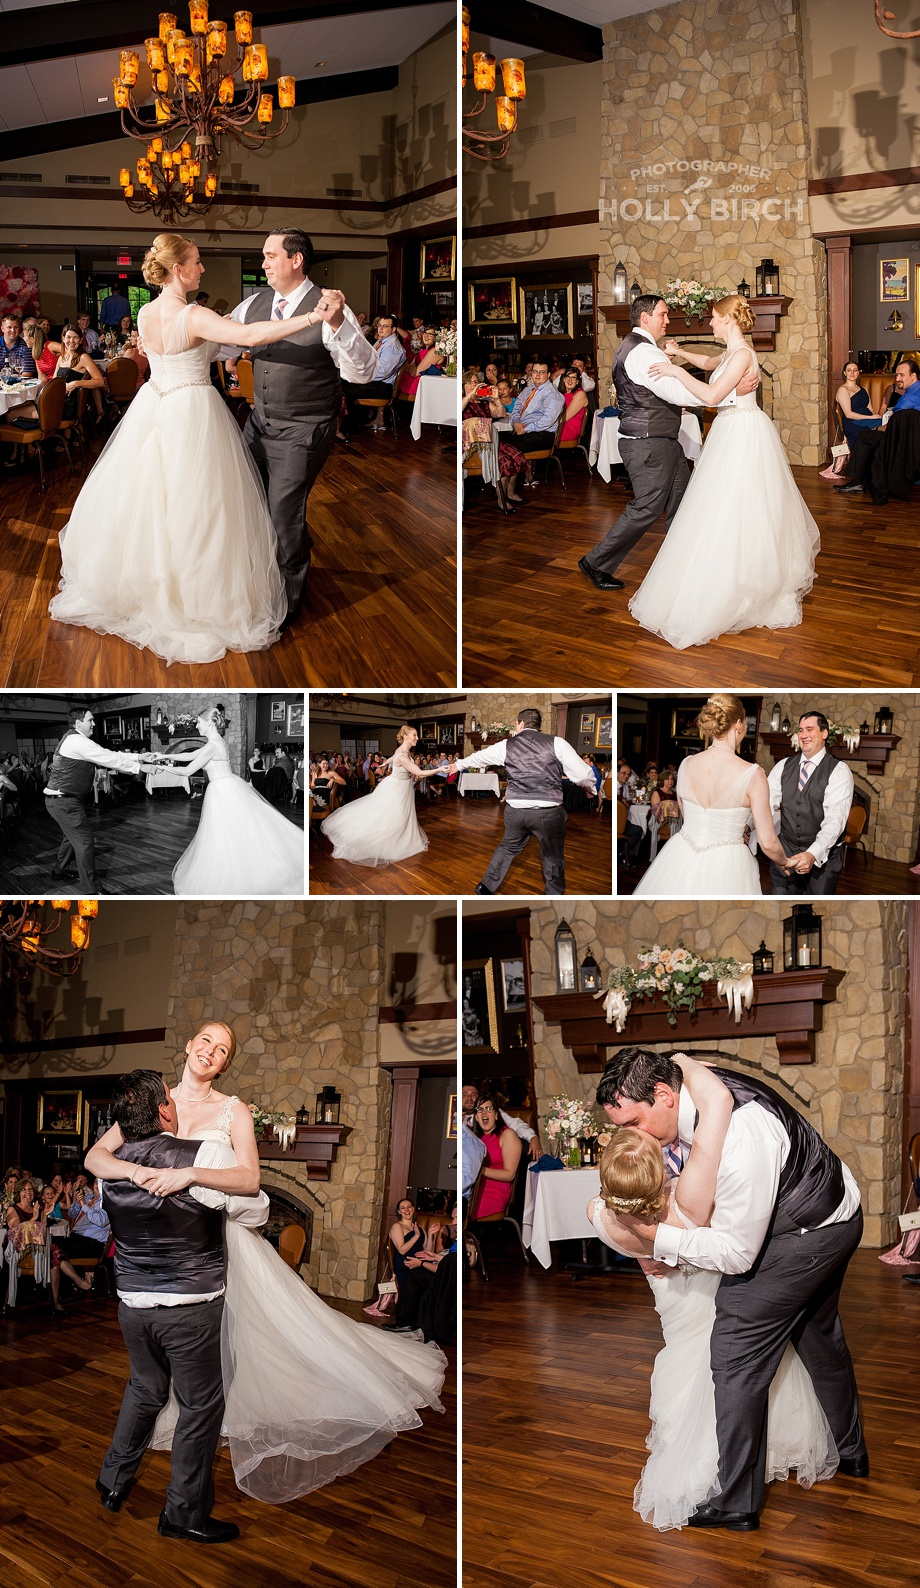 bride and groom's first dance as a couple